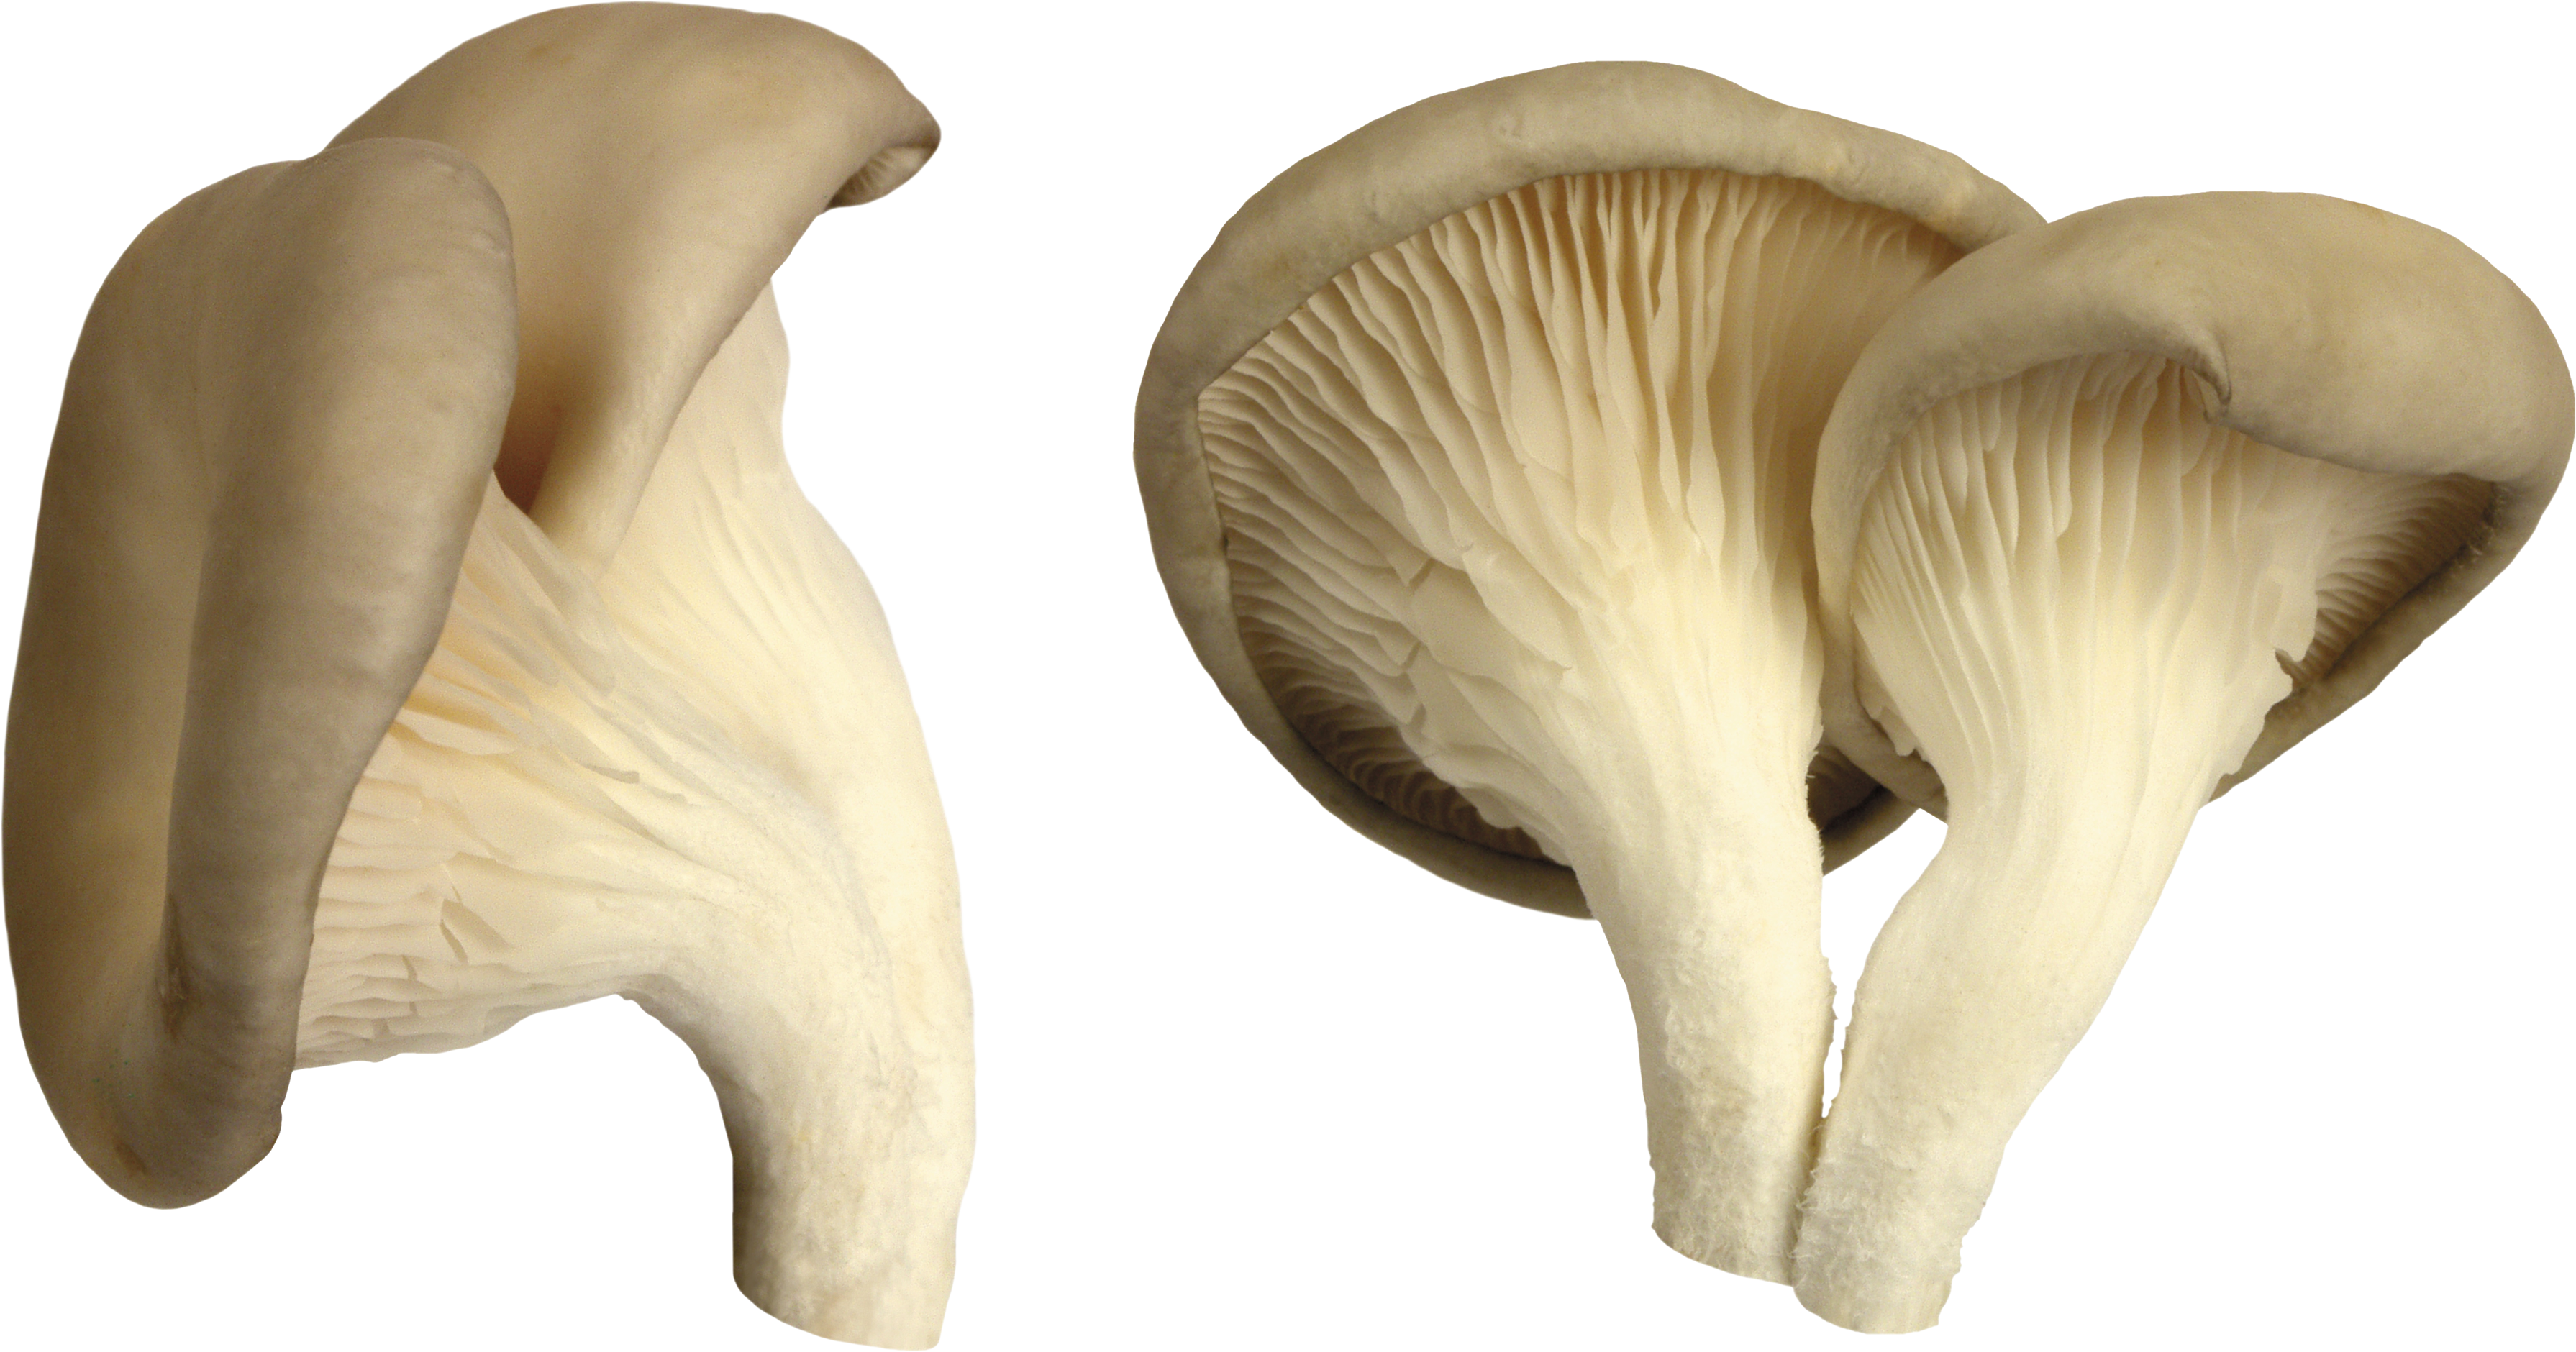 White png image purepng. Mushrooms clipart oyster mushroom